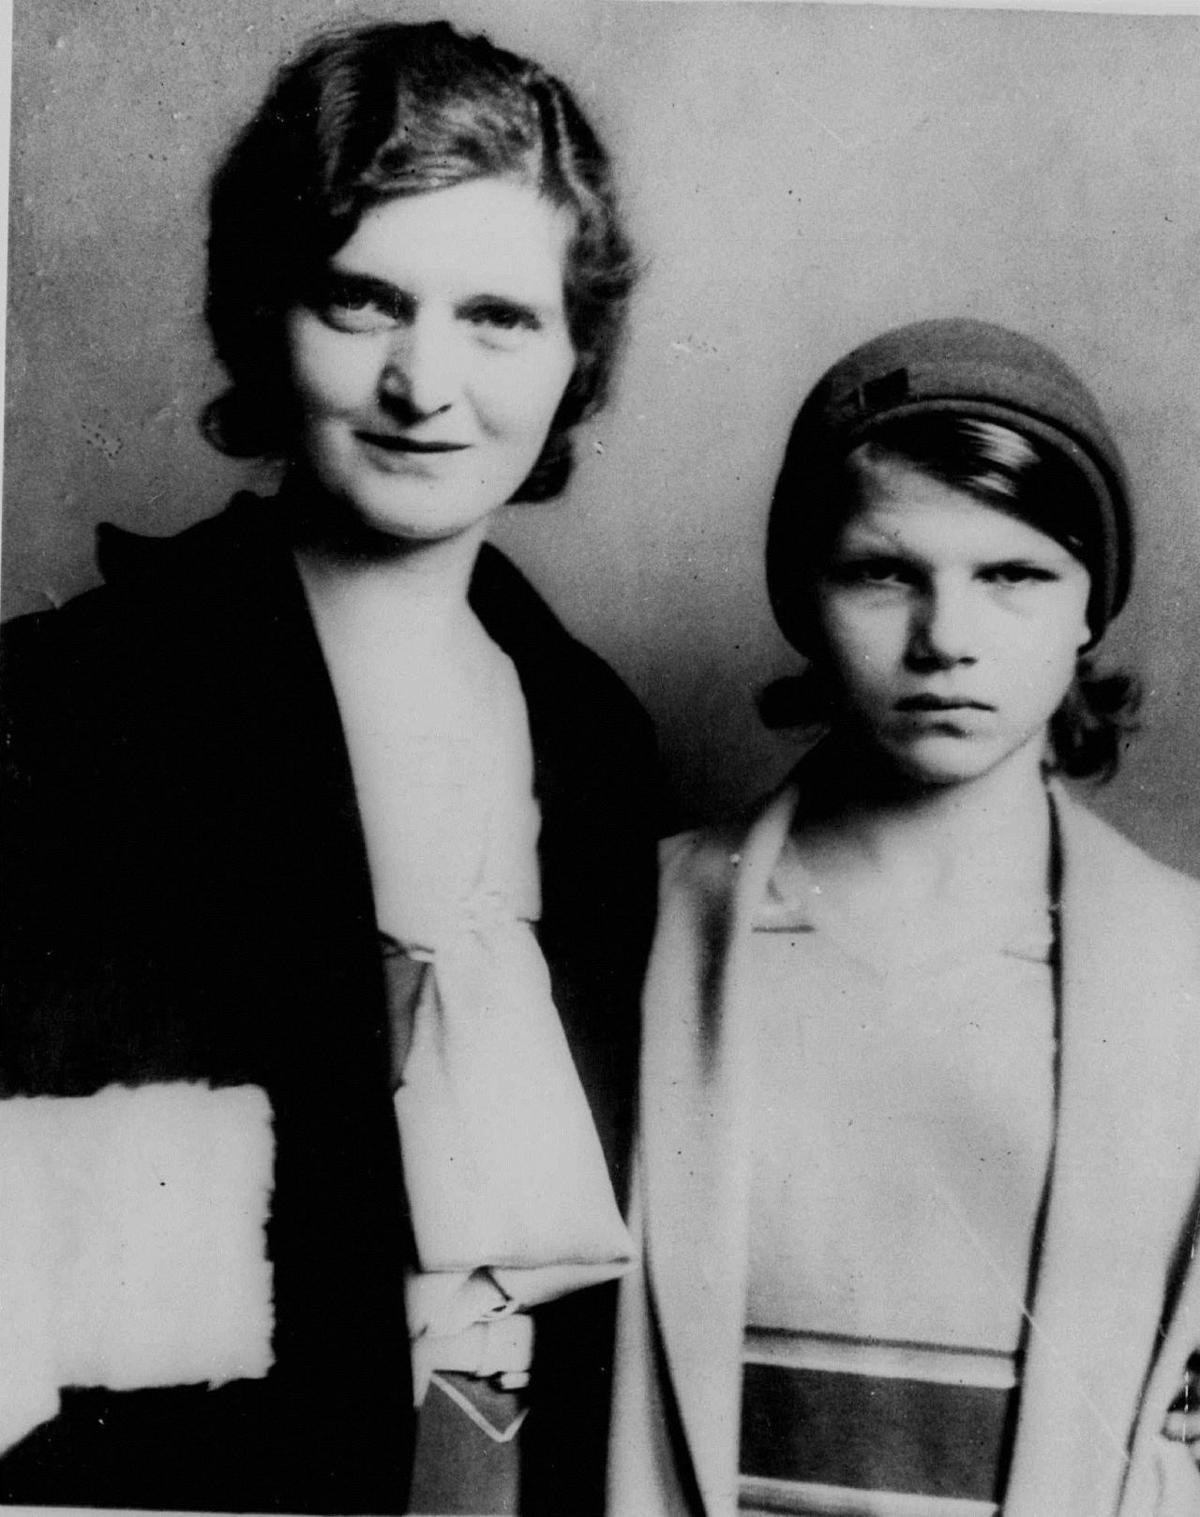 DNA proves President Harding fathered child out of wedlock ...